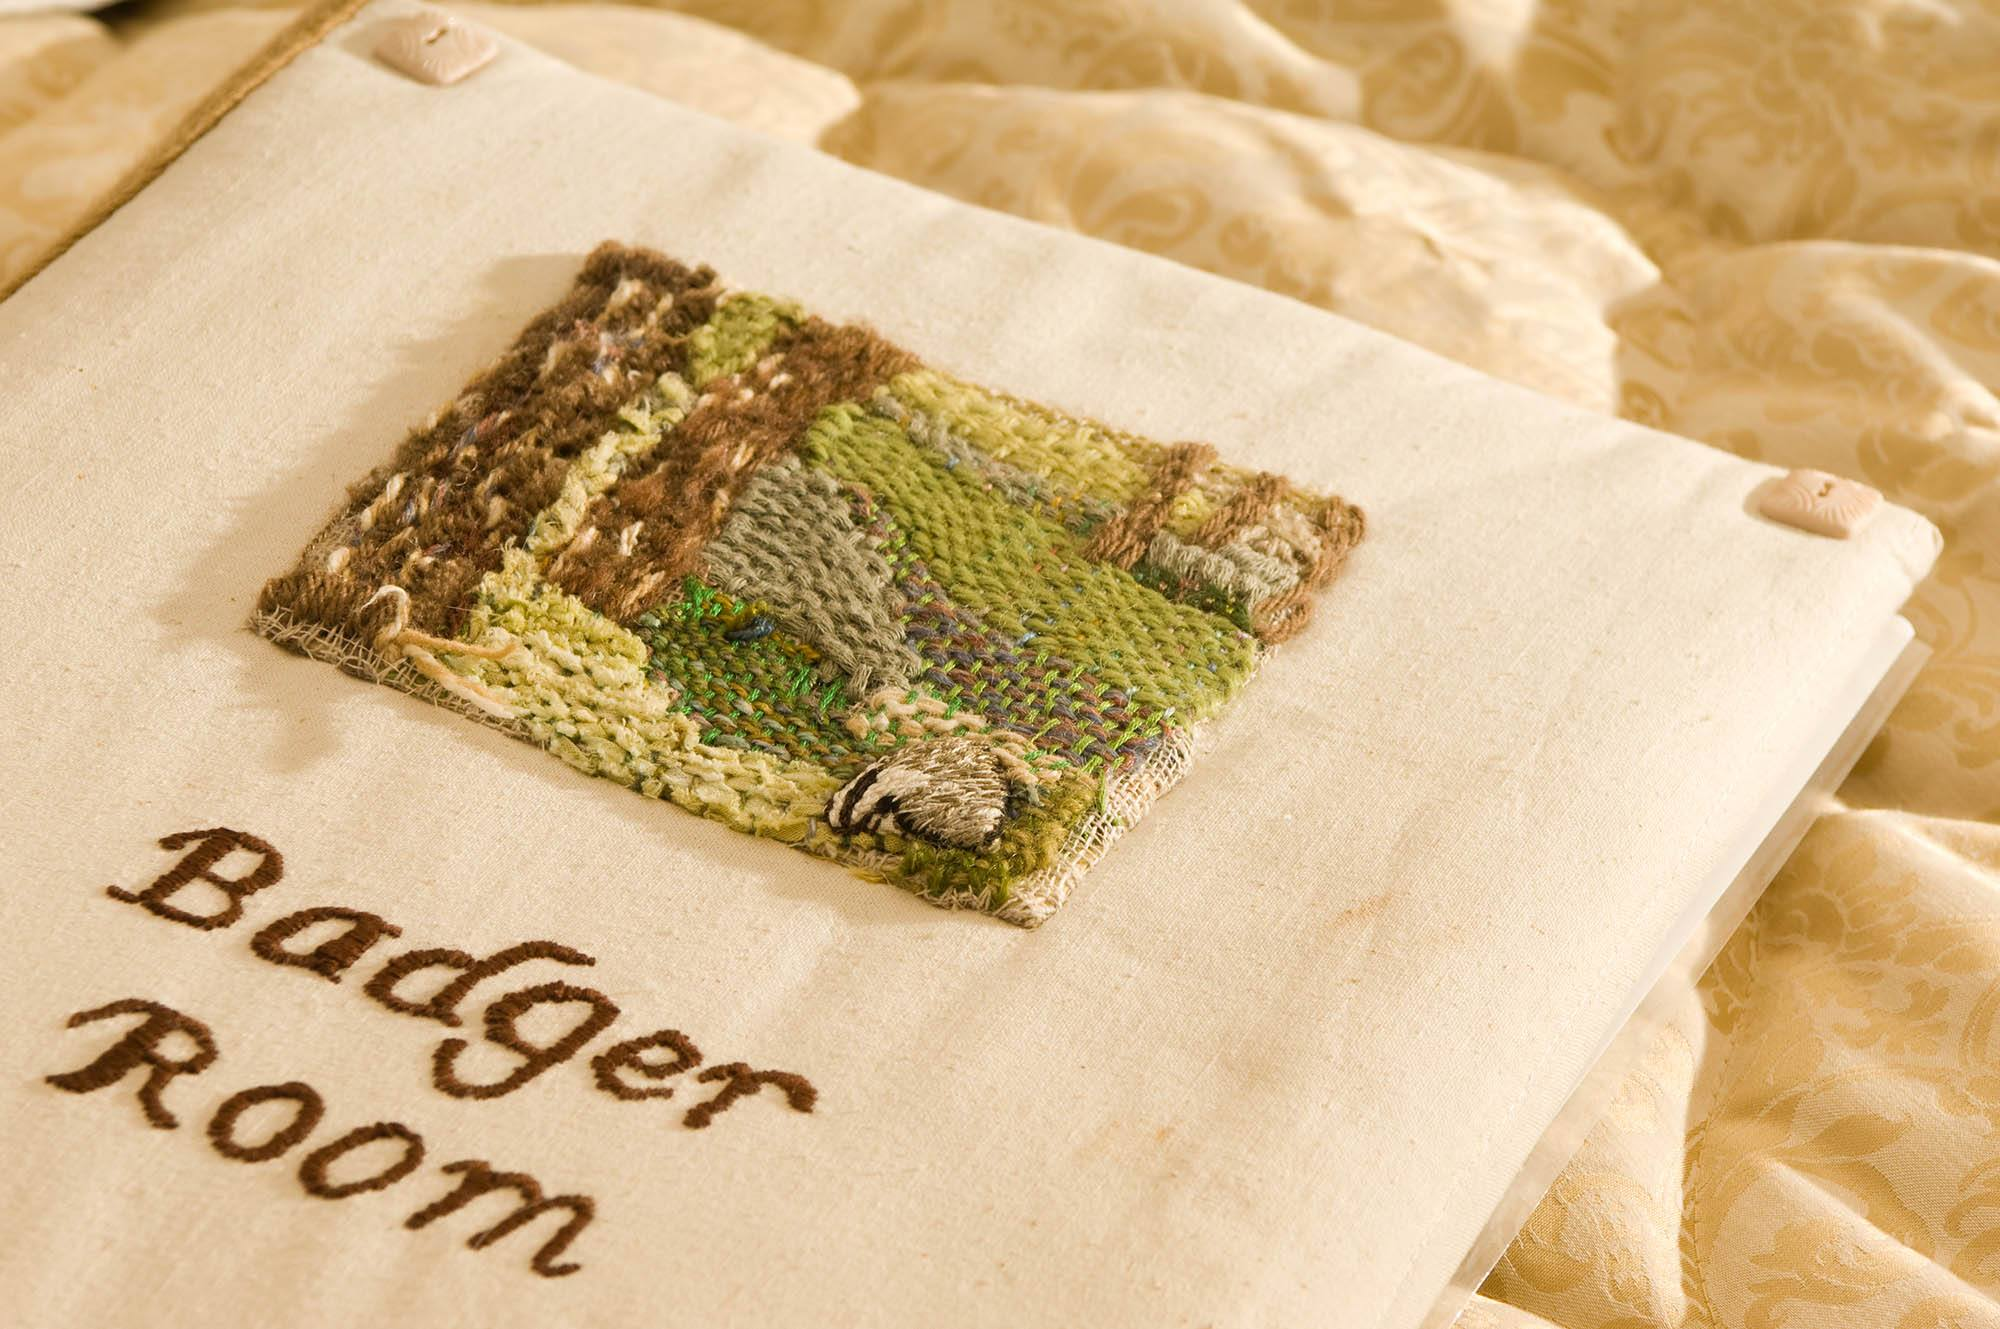 Badger_Room_Dover_Kent_Bed_Room_Cushion